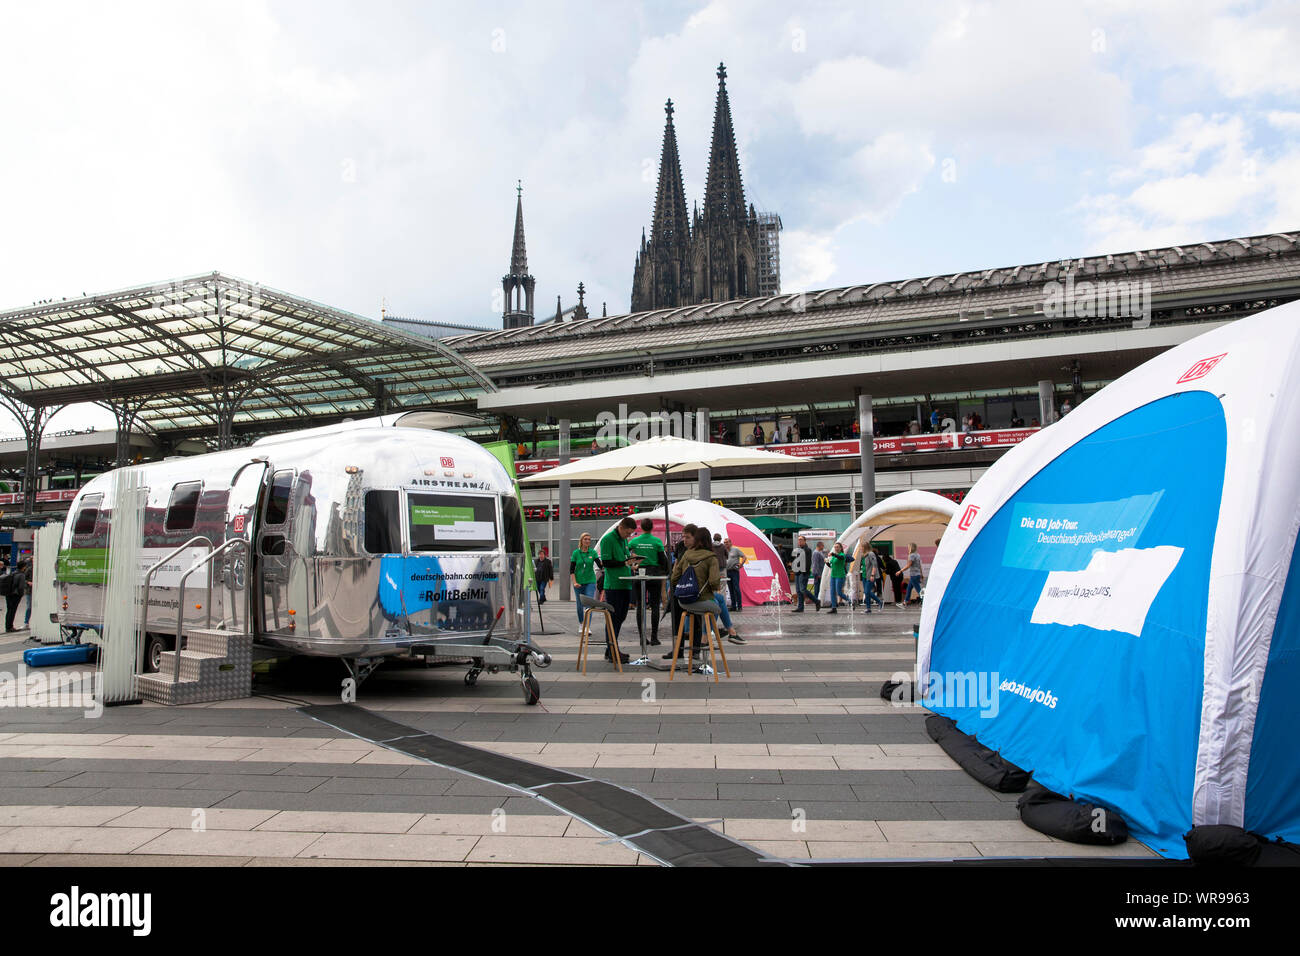 job exchange of Deutsche Bahn (German Railway) in front of the main station on Breslauer Platz, Cologne, Germany.  Jobboerse der Deutschen Bahn vor de Stock Photo